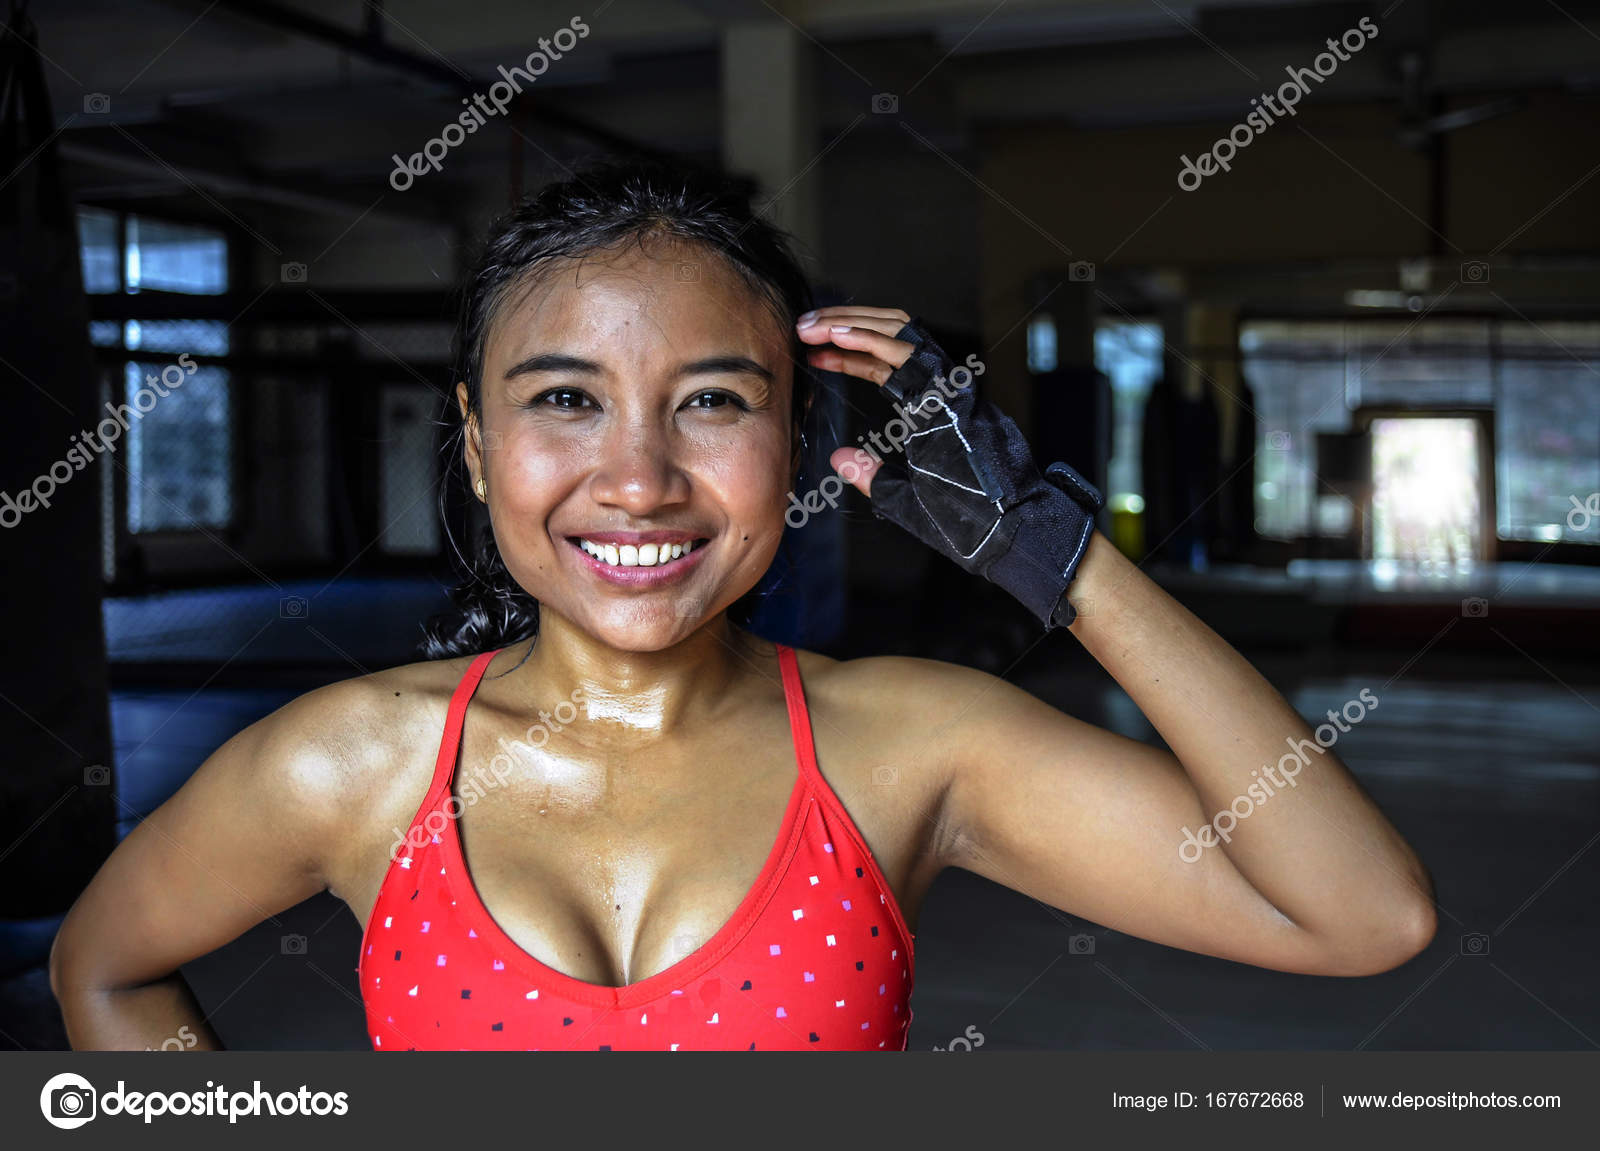 cfeffce7262 Corporate portrait of happy beautiful and sweaty young Asian woman in sport  training cloths smiling relaxed at gym dojo after workout exercise in  fitness ...